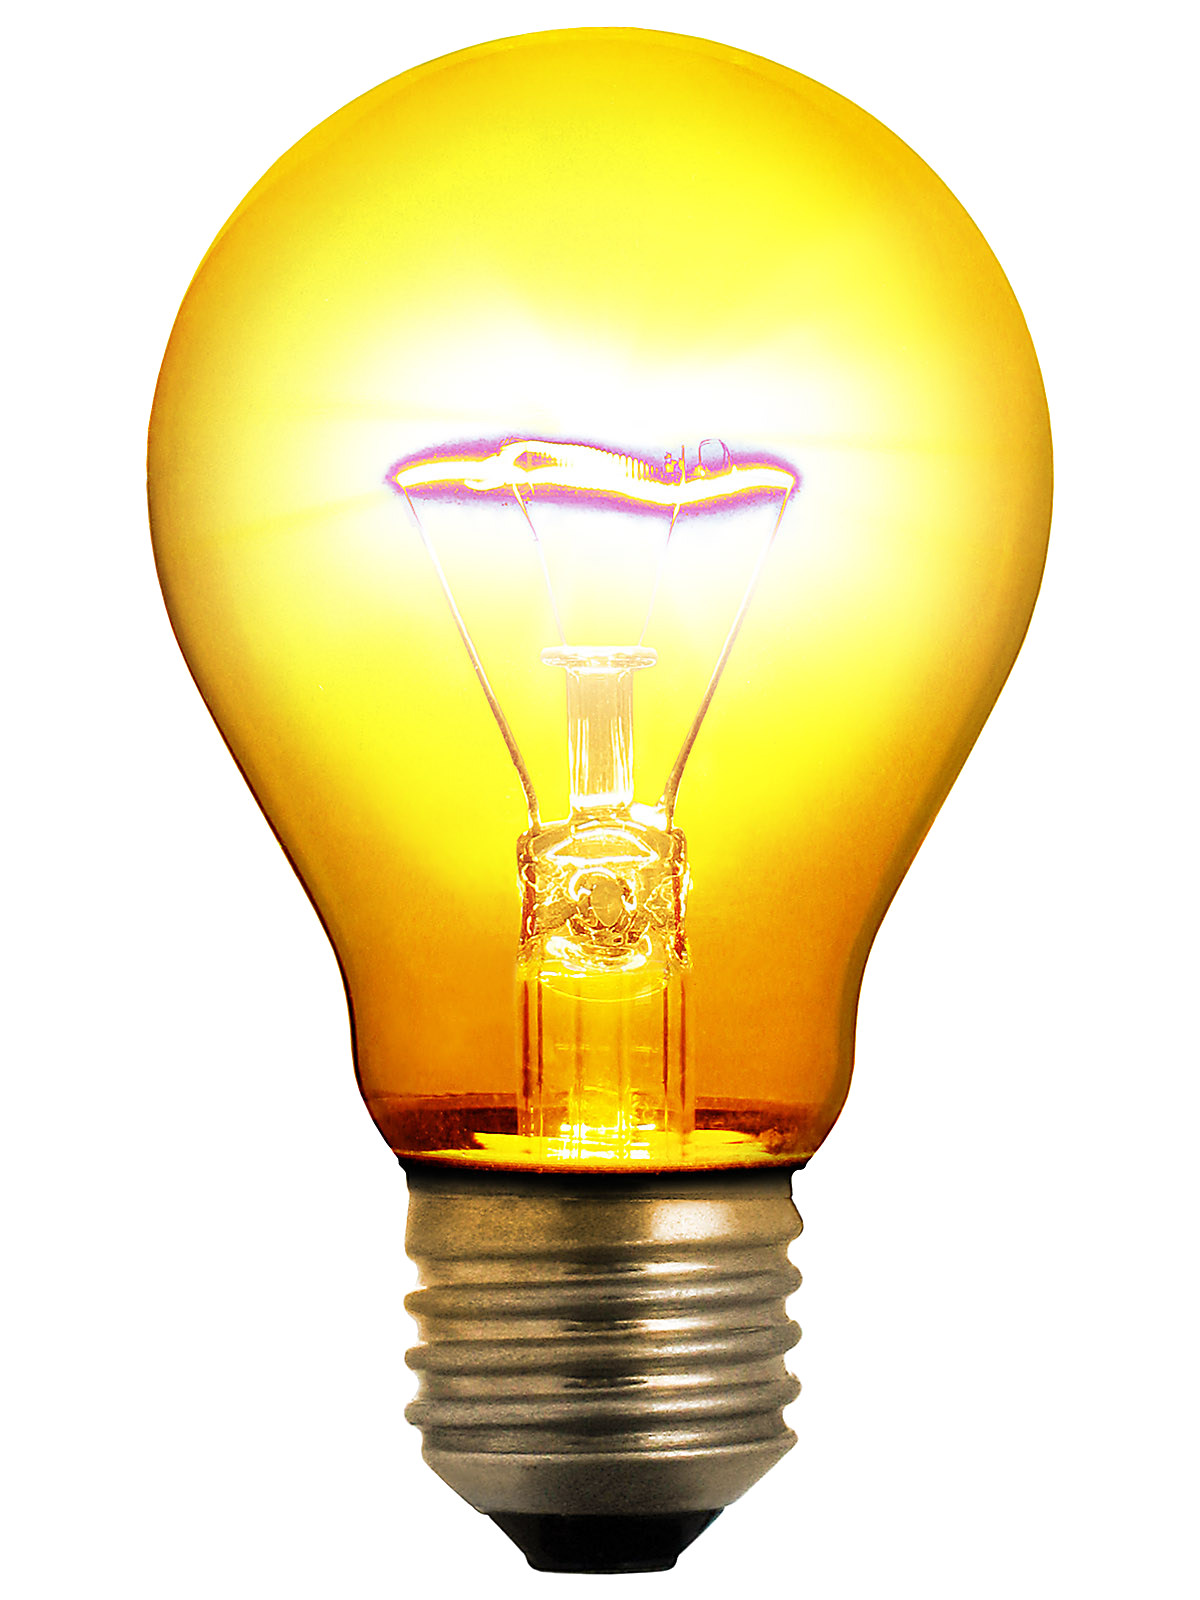 Lightbulb png transparent. Light bulb images free graphic transparent